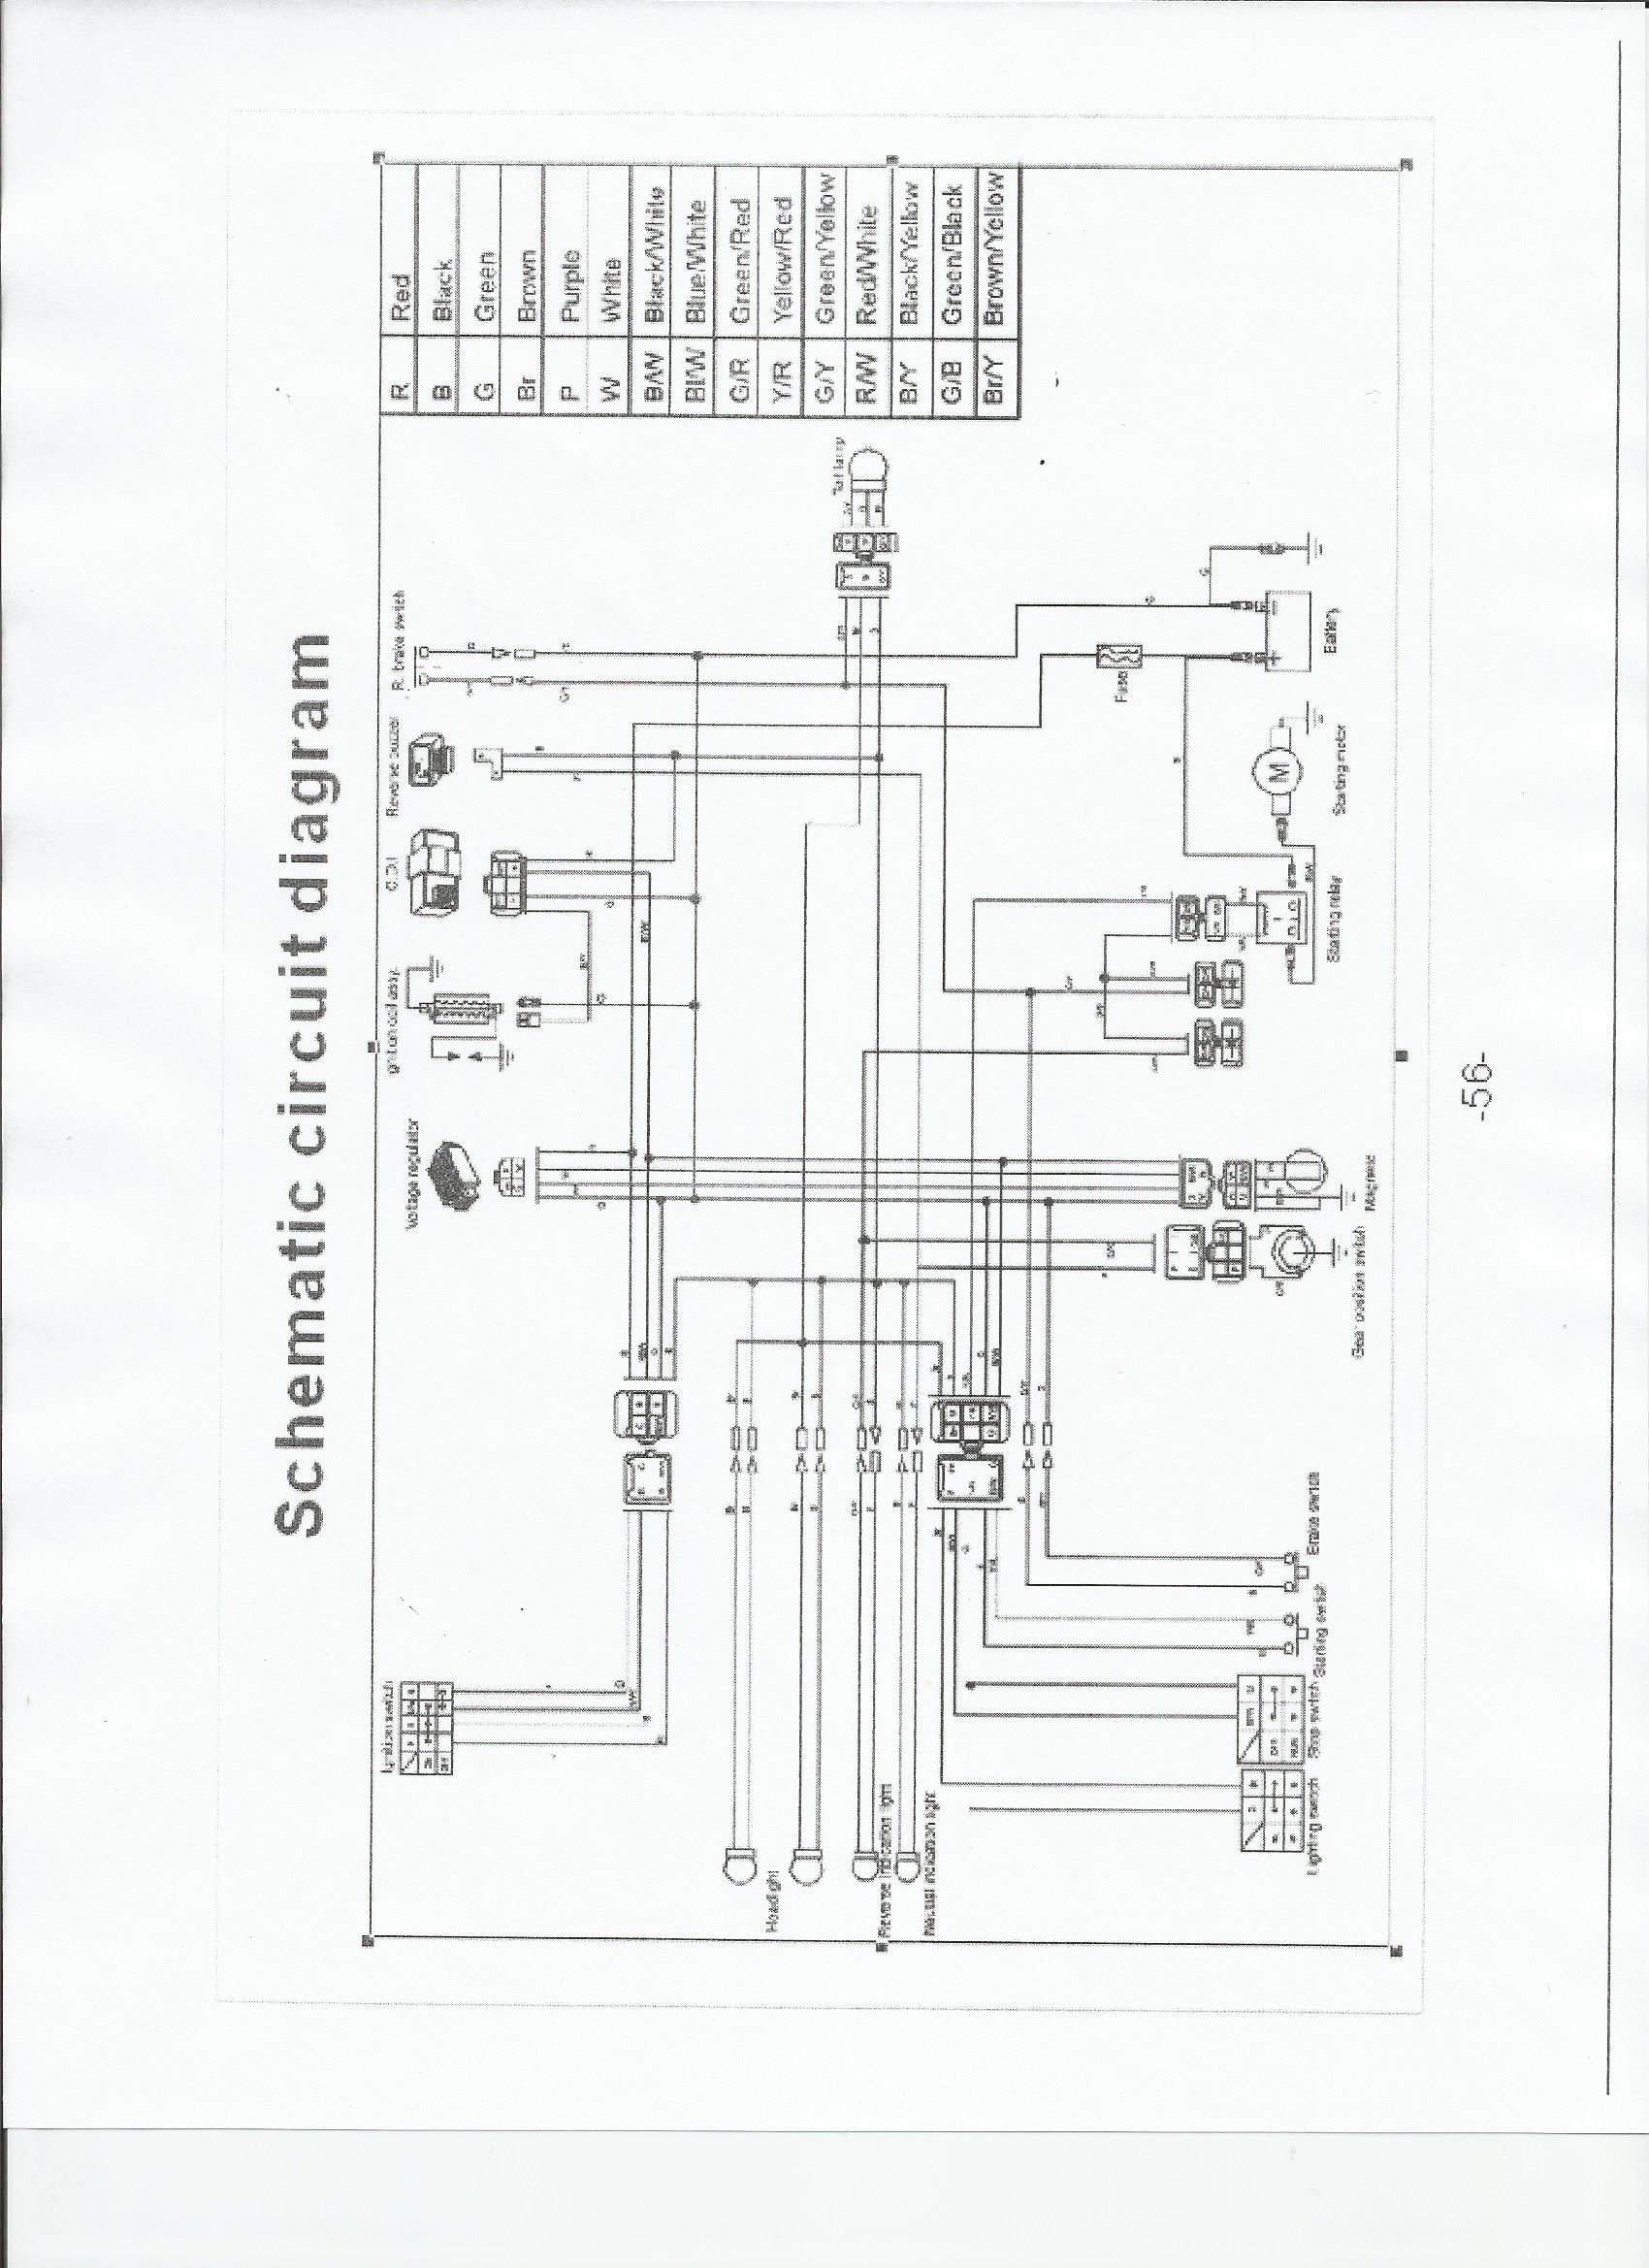 tao tao wiring schematic chinese 4 wheeler wiring diagram chinese atv cdi diagram \u2022 wiring  at soozxer.org